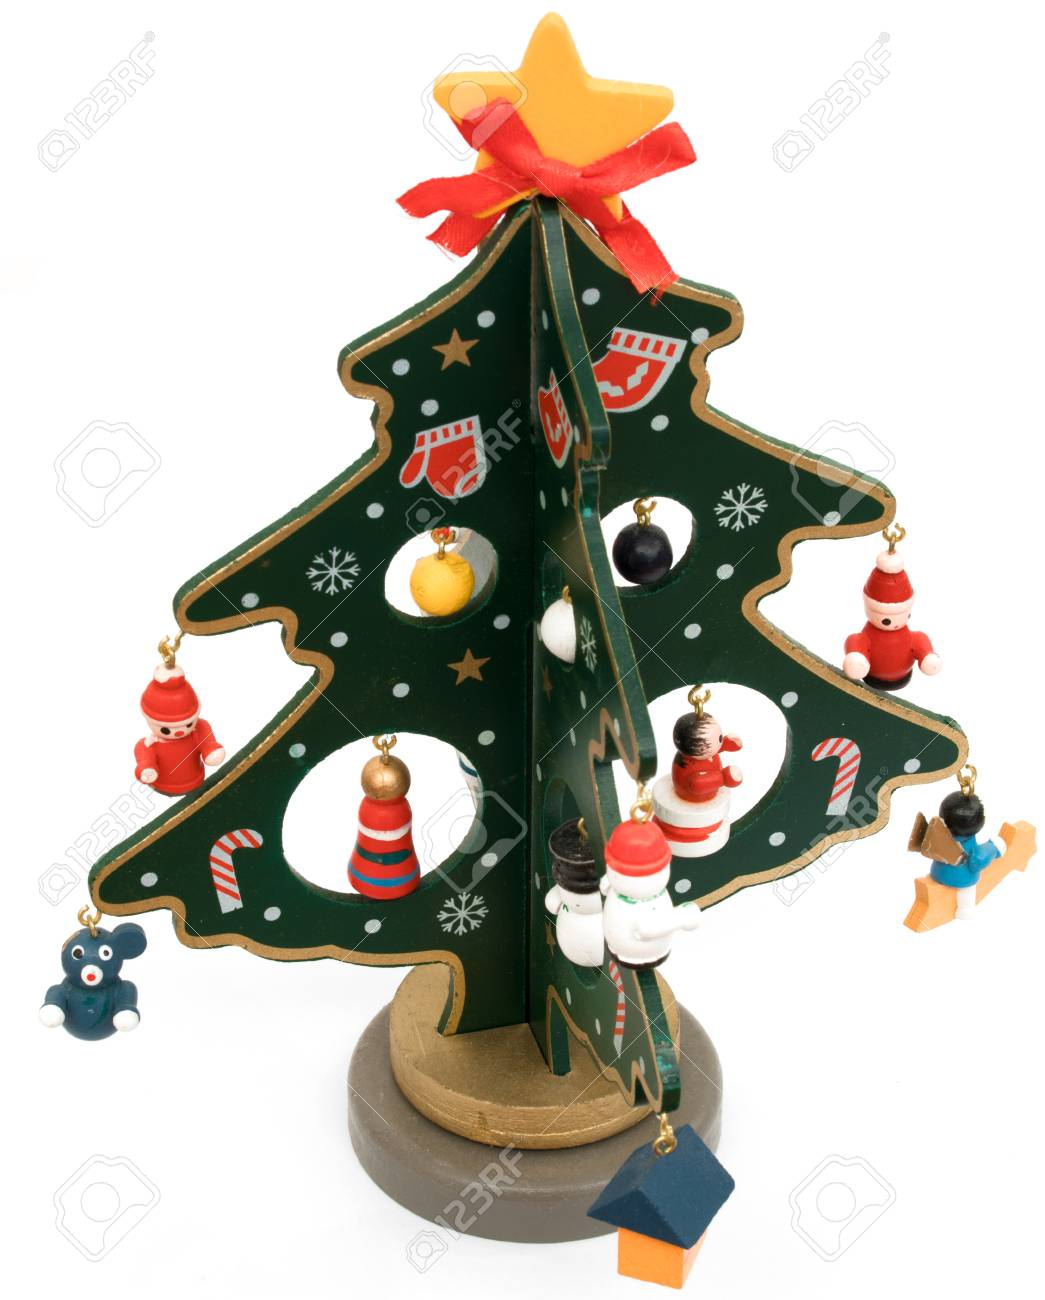 Colorful Painted Wooden Christmas Tree Isolated On White Background